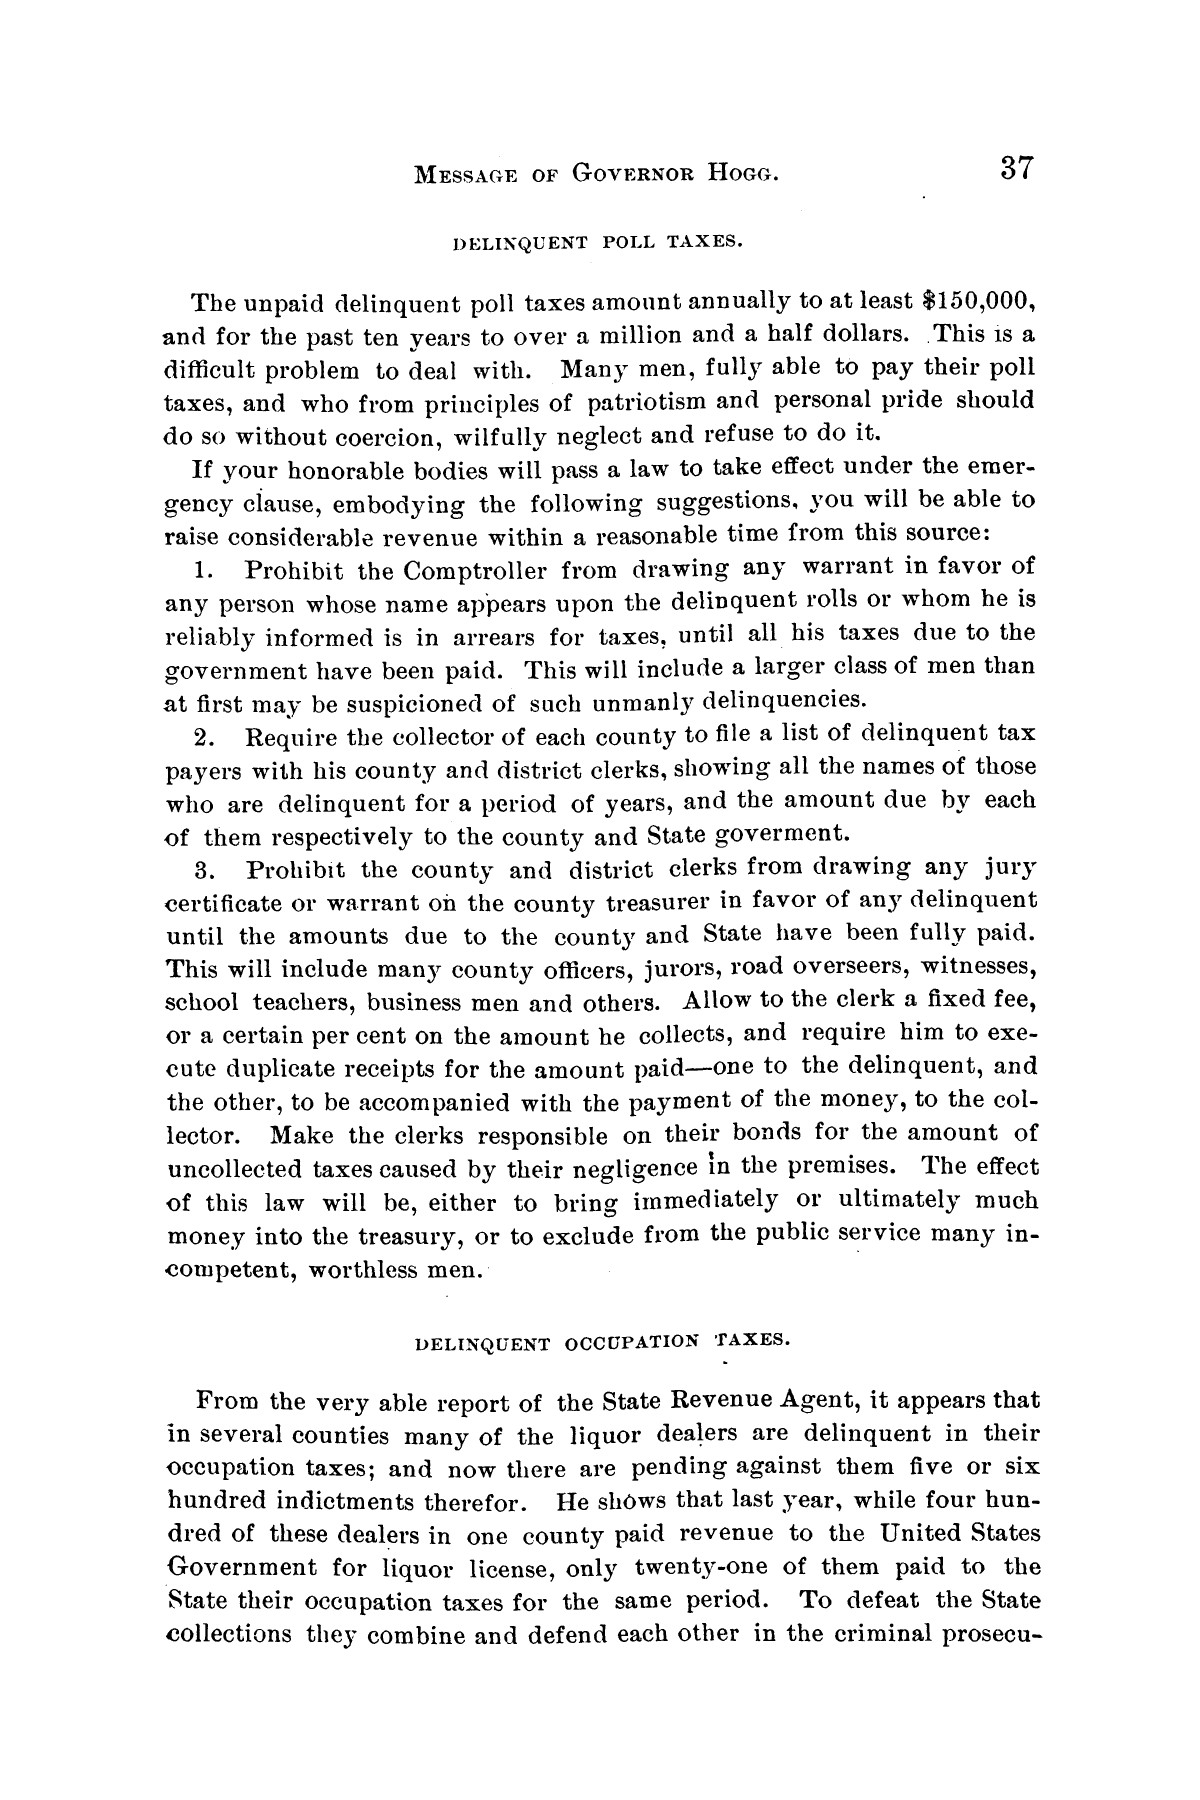 Message of Governor James S. Hogg to the twenty-fourth legislature of Texas                                                                                                      [Sequence #]: 37 of 48